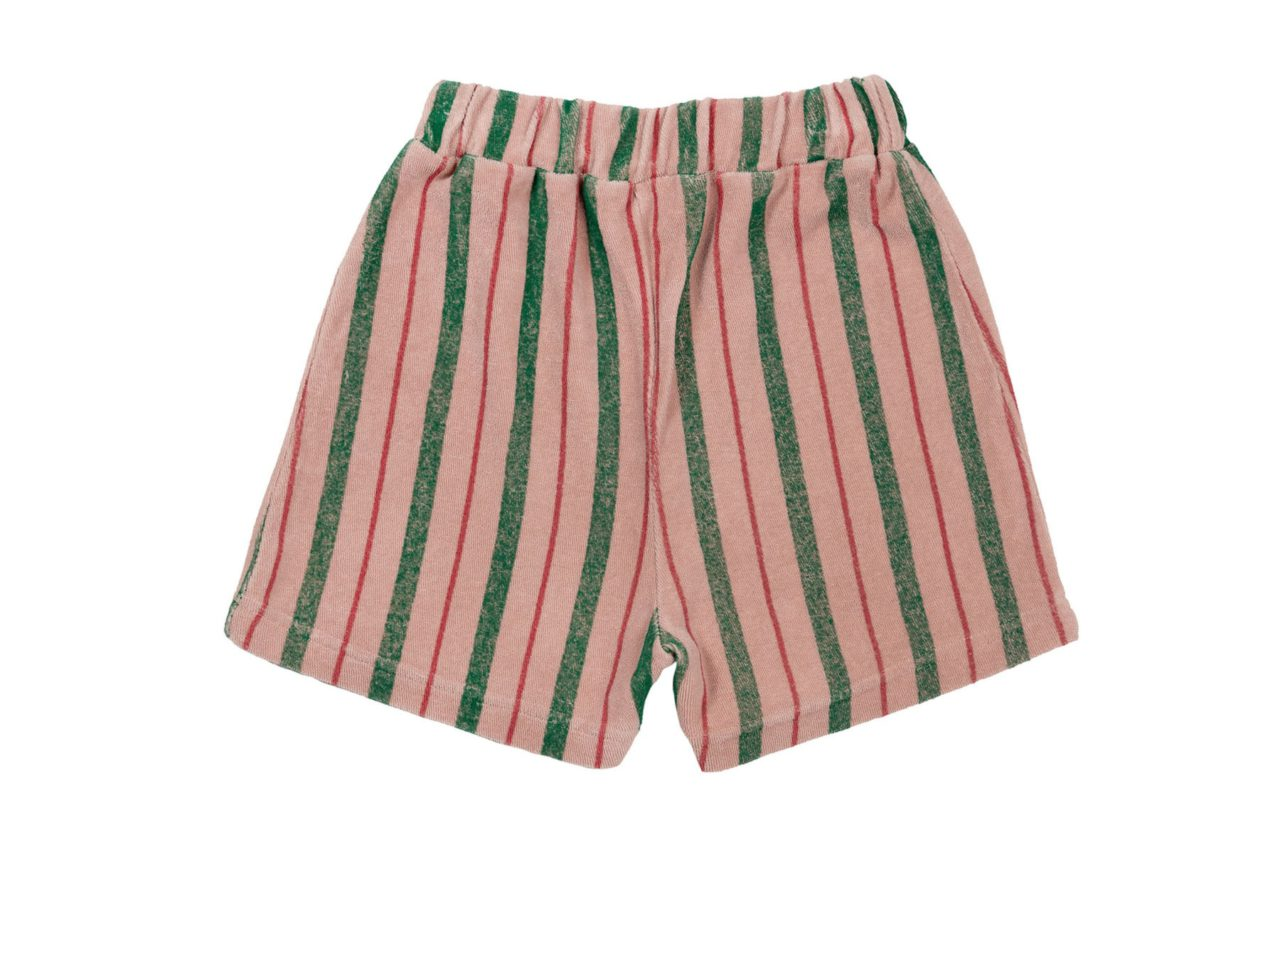 thecampamento_striped_shorts_02b